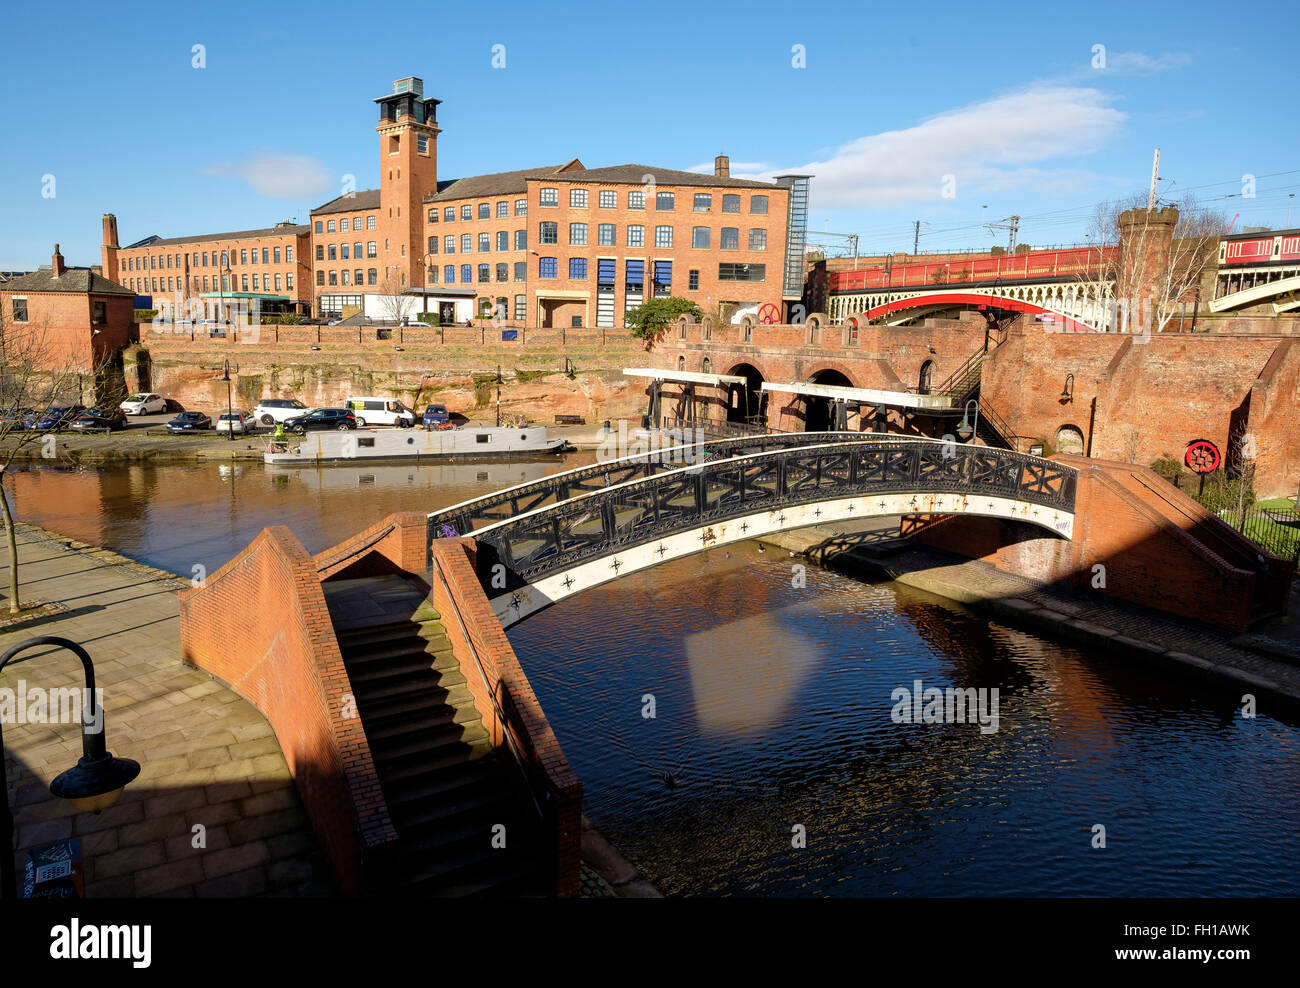 Manchester, UK - 15 February 2016: The end of the Bridgewater Canal at the inner city conservation area of Castlefield. - Stock Image